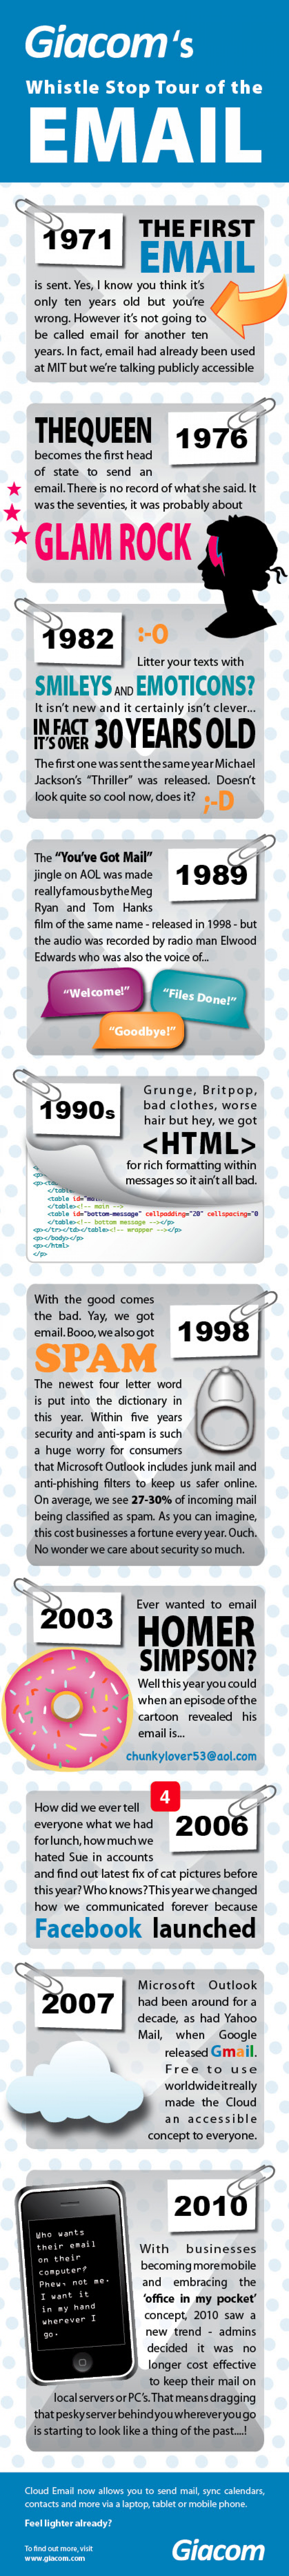 Whistle Stop Tour of the Email Infographic